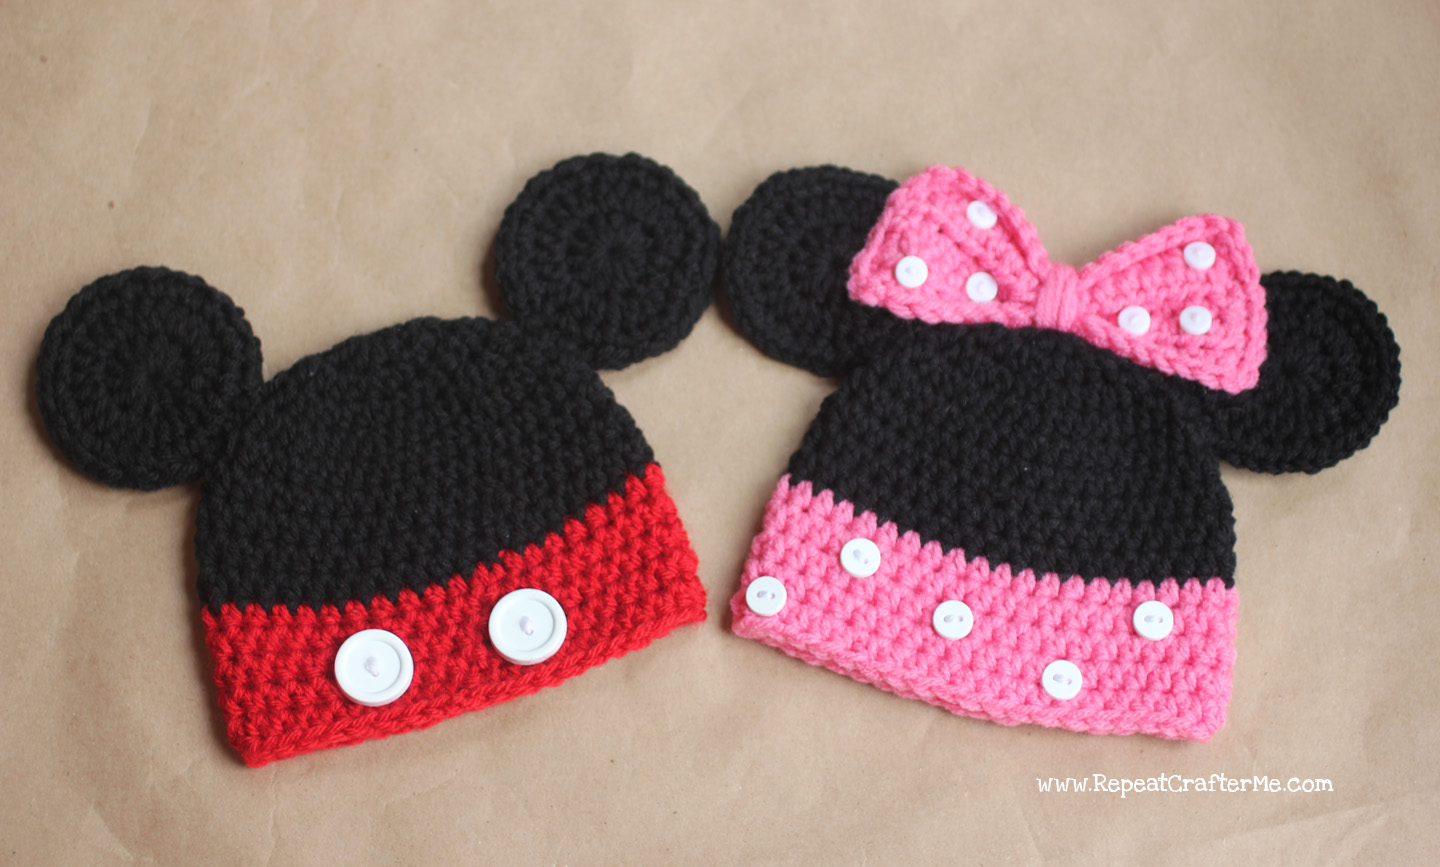 Crochet Patterns Infant Hats : ... crochet hats! I am sharing the pattern for newborn size, but will give